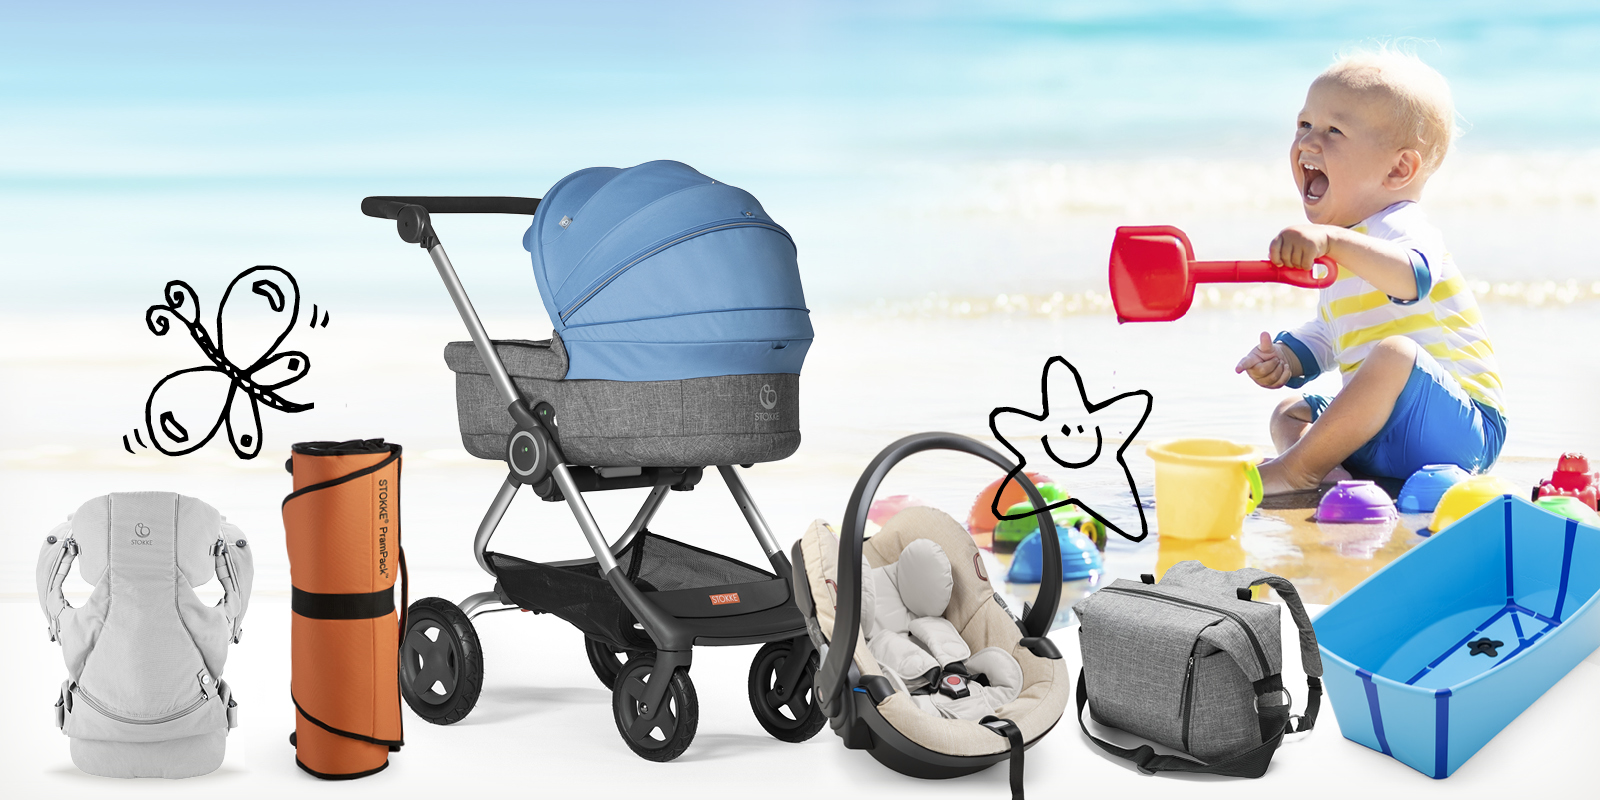 Baby crib for sale singapore - 7 Tips For Safe Travels With Your Baby